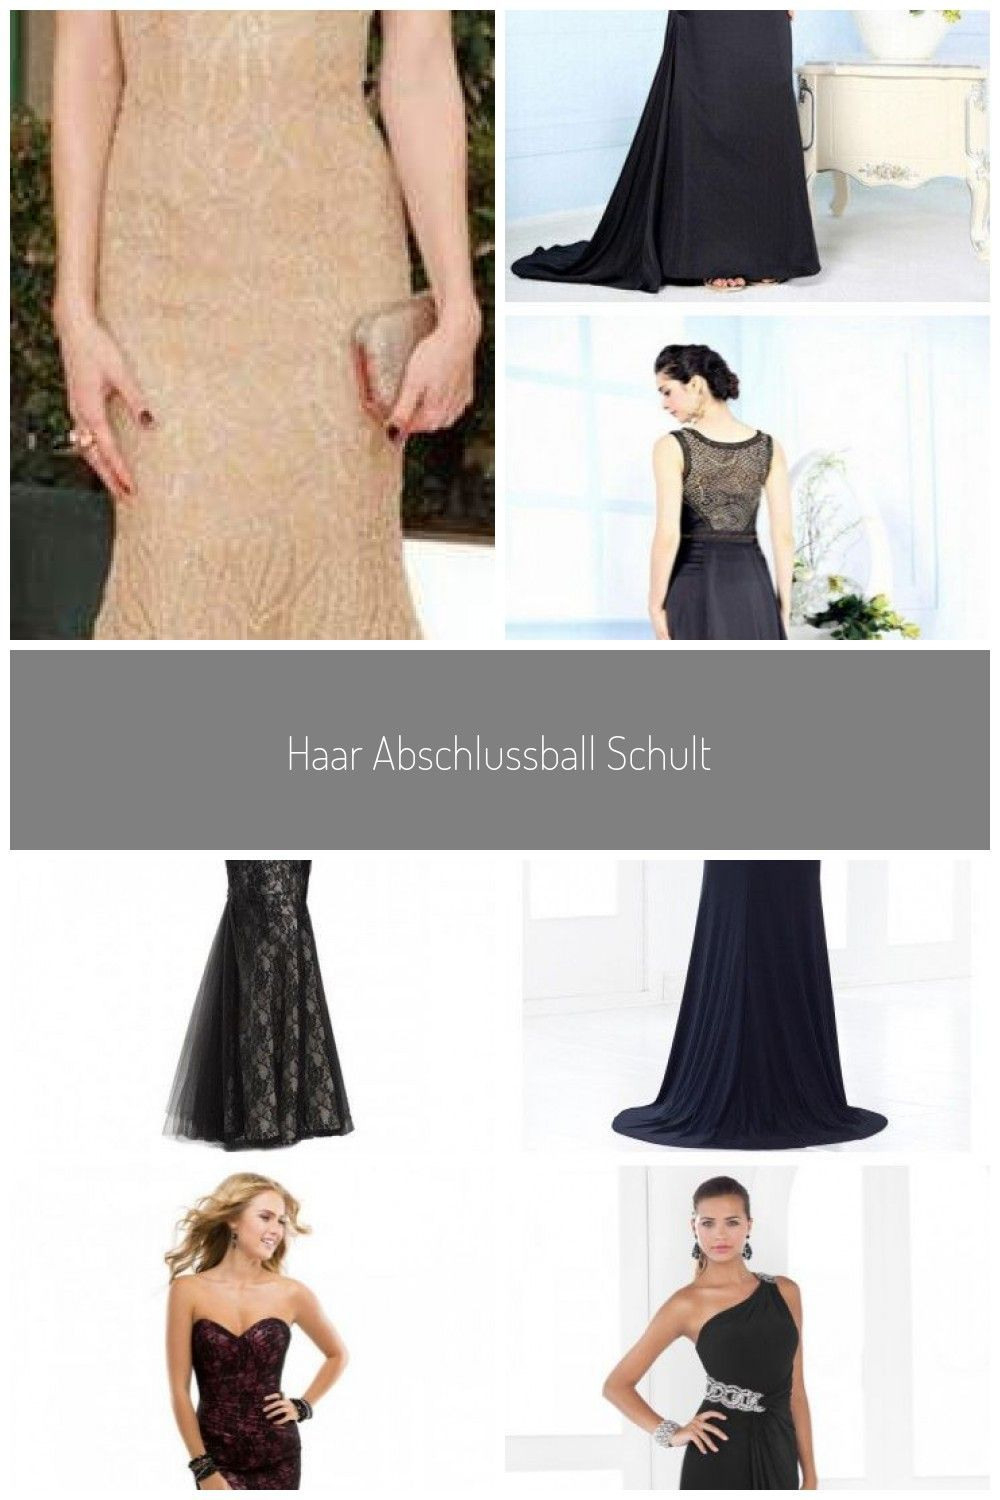 13 Kreativ Abend In Dress BoutiqueFormal Luxus Abend In Dress Bester Preis